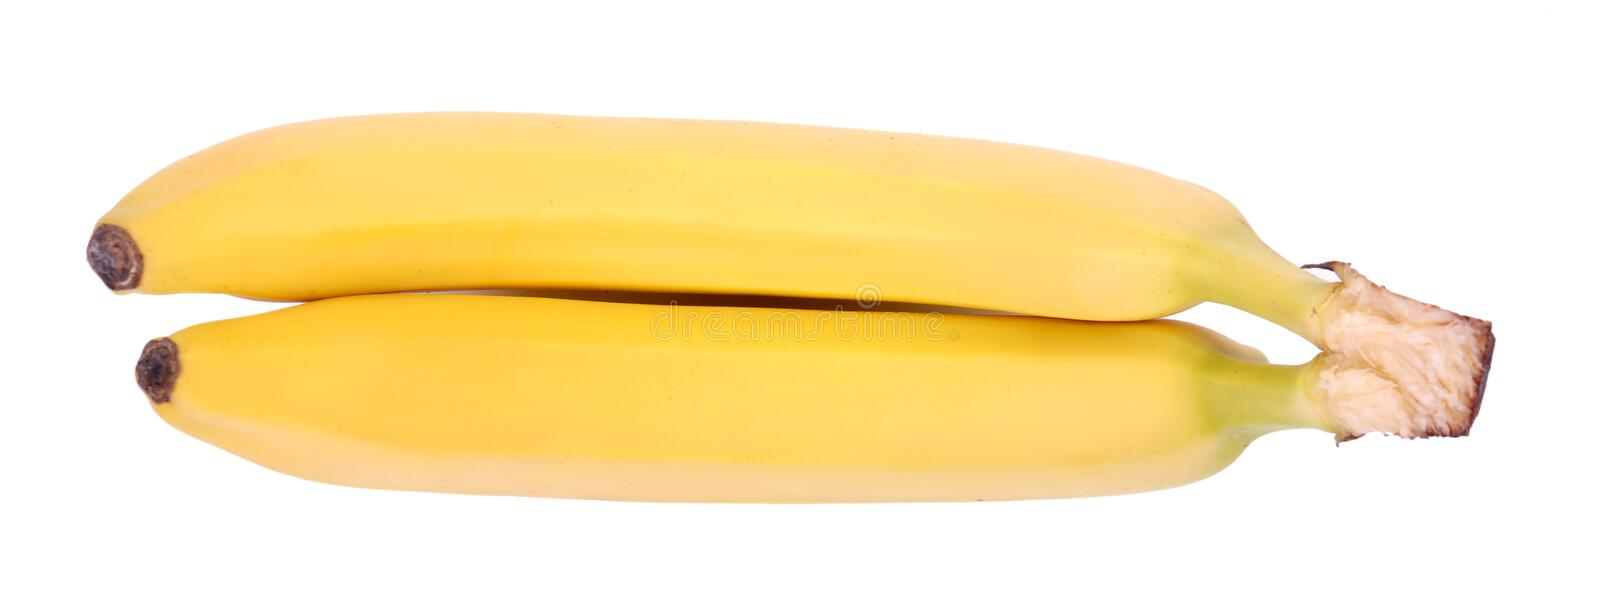 A close up of a pair of yellow bananas. Sweet bananas isolated on a white background. Tropical fruits full of healthful vitamins. Three whole and bright yellow royalty free stock photo